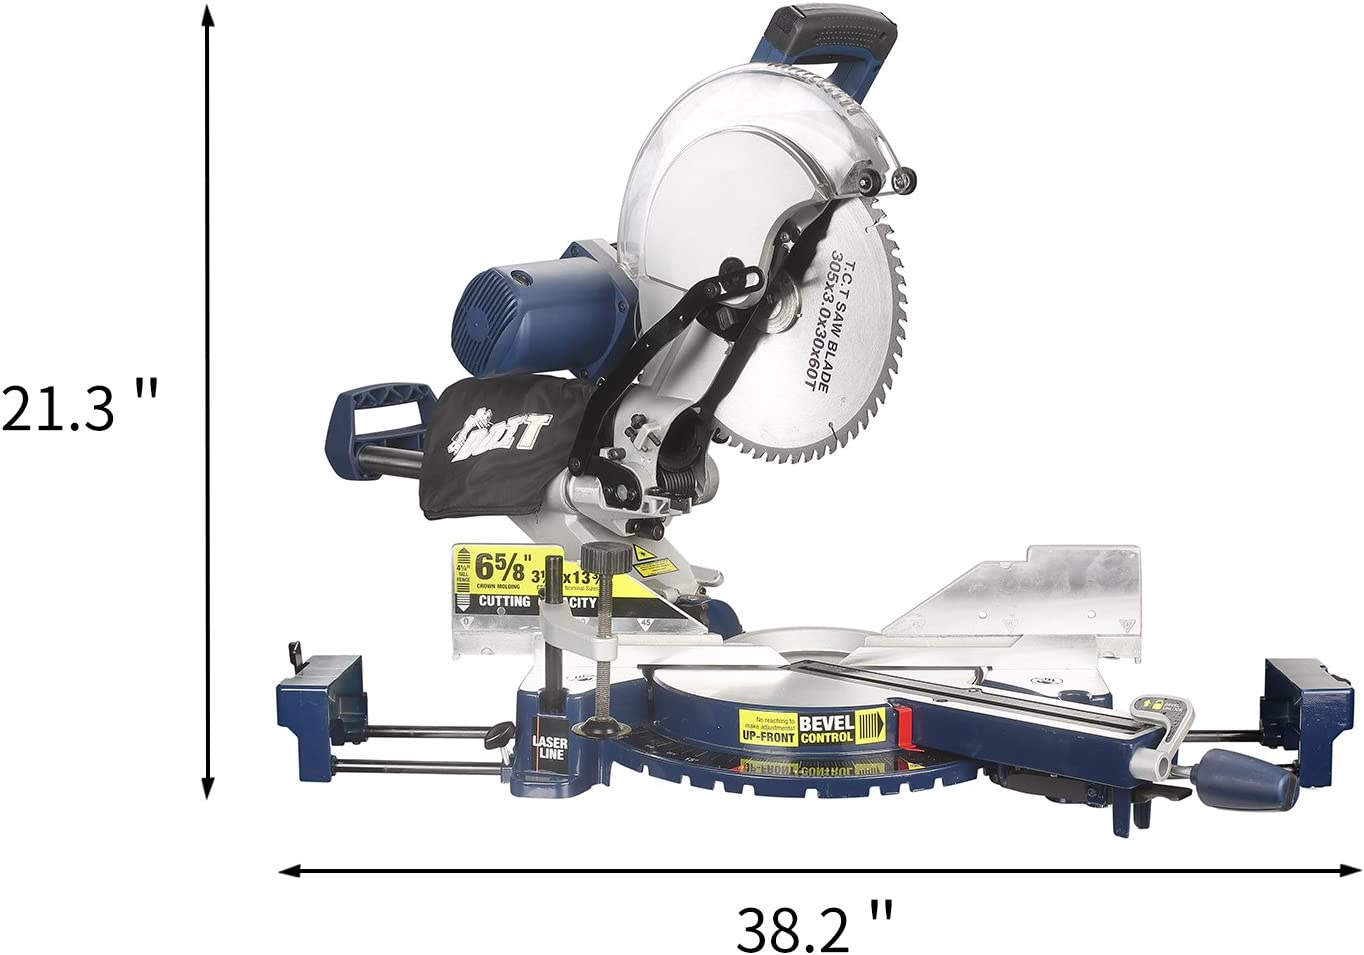 DOIT 12-Inch Dual-Bevel best Sliding Compound Miter Saw